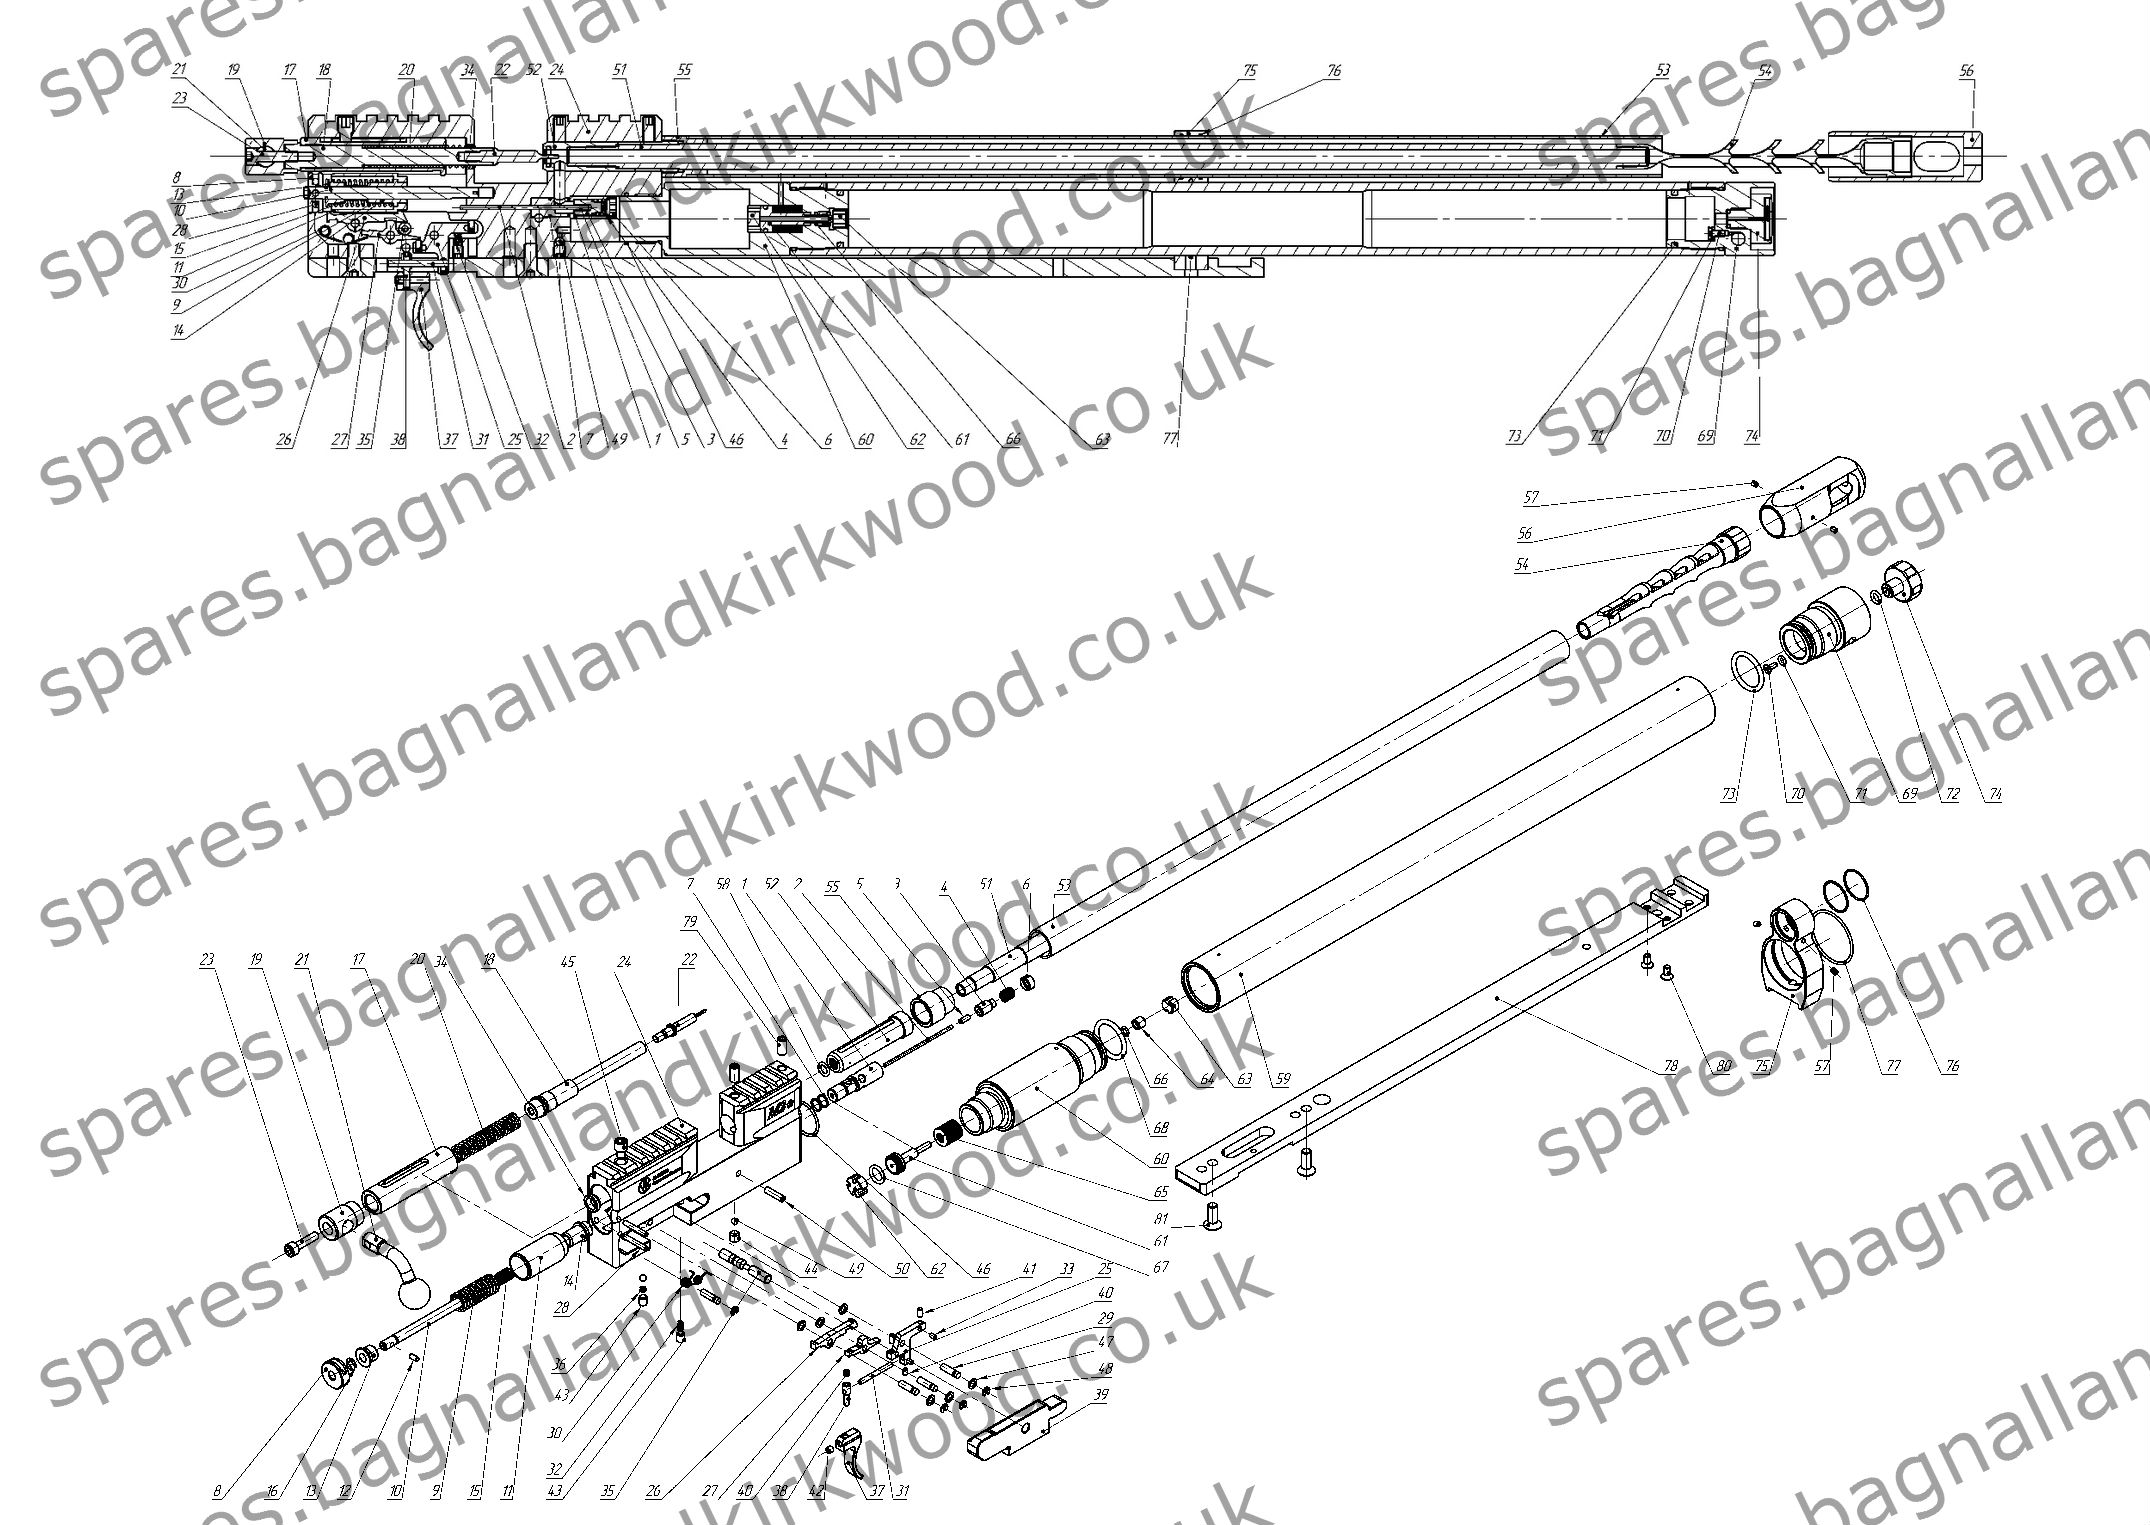 Groovy Parts Diagram Moreover M2 Carbine Rifle On M1 Carbine Exploded Parts Wiring Cloud Inamadienstapotheekhoekschewaardnl